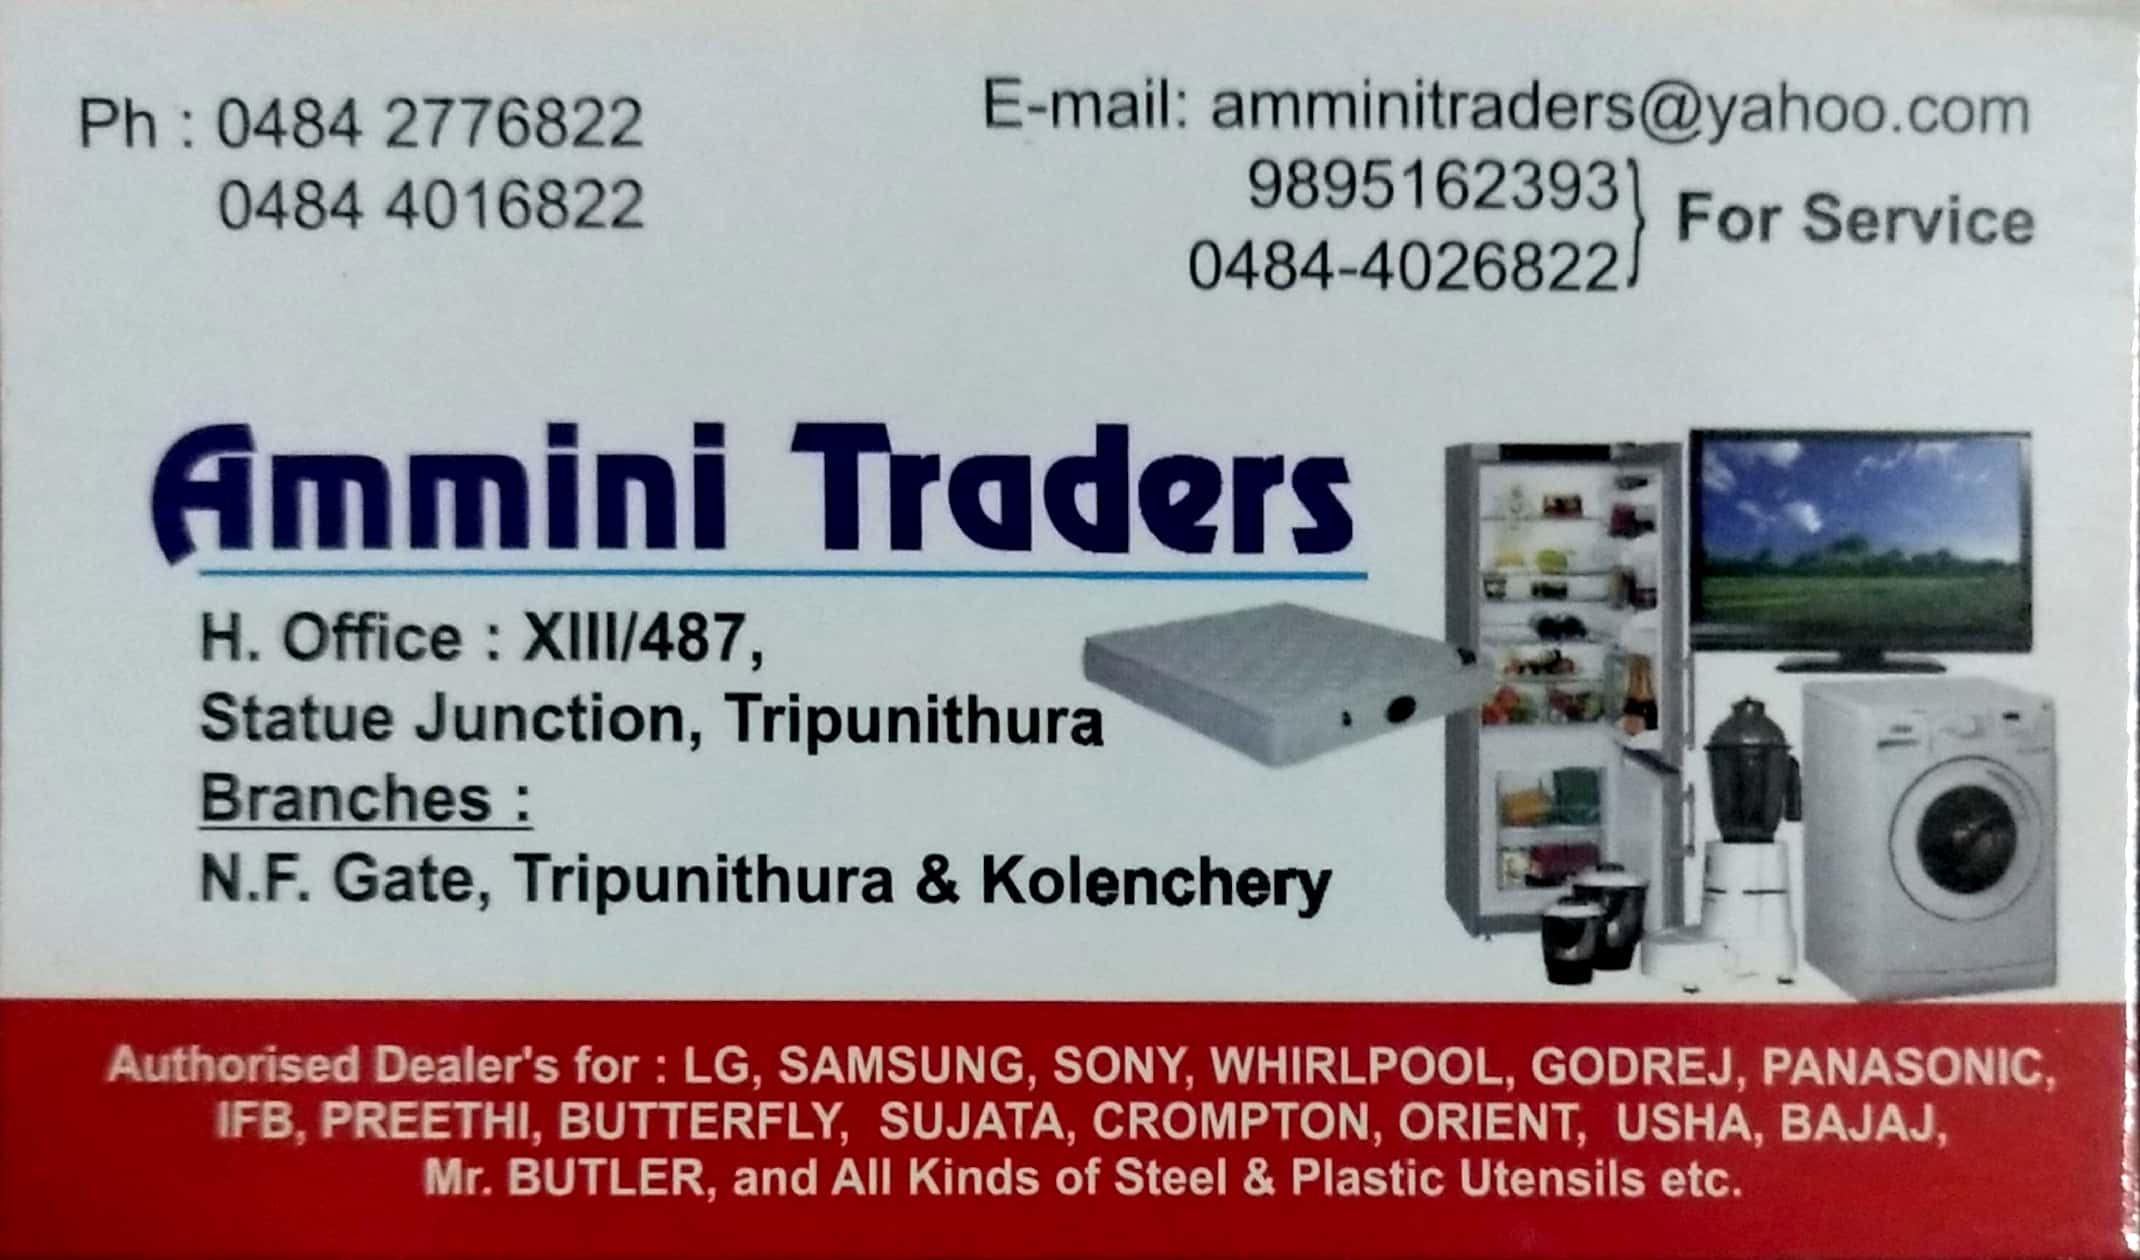 AMMINI TRADERS, ELECTRONICS,  service in Thrippunithura, Ernakulam